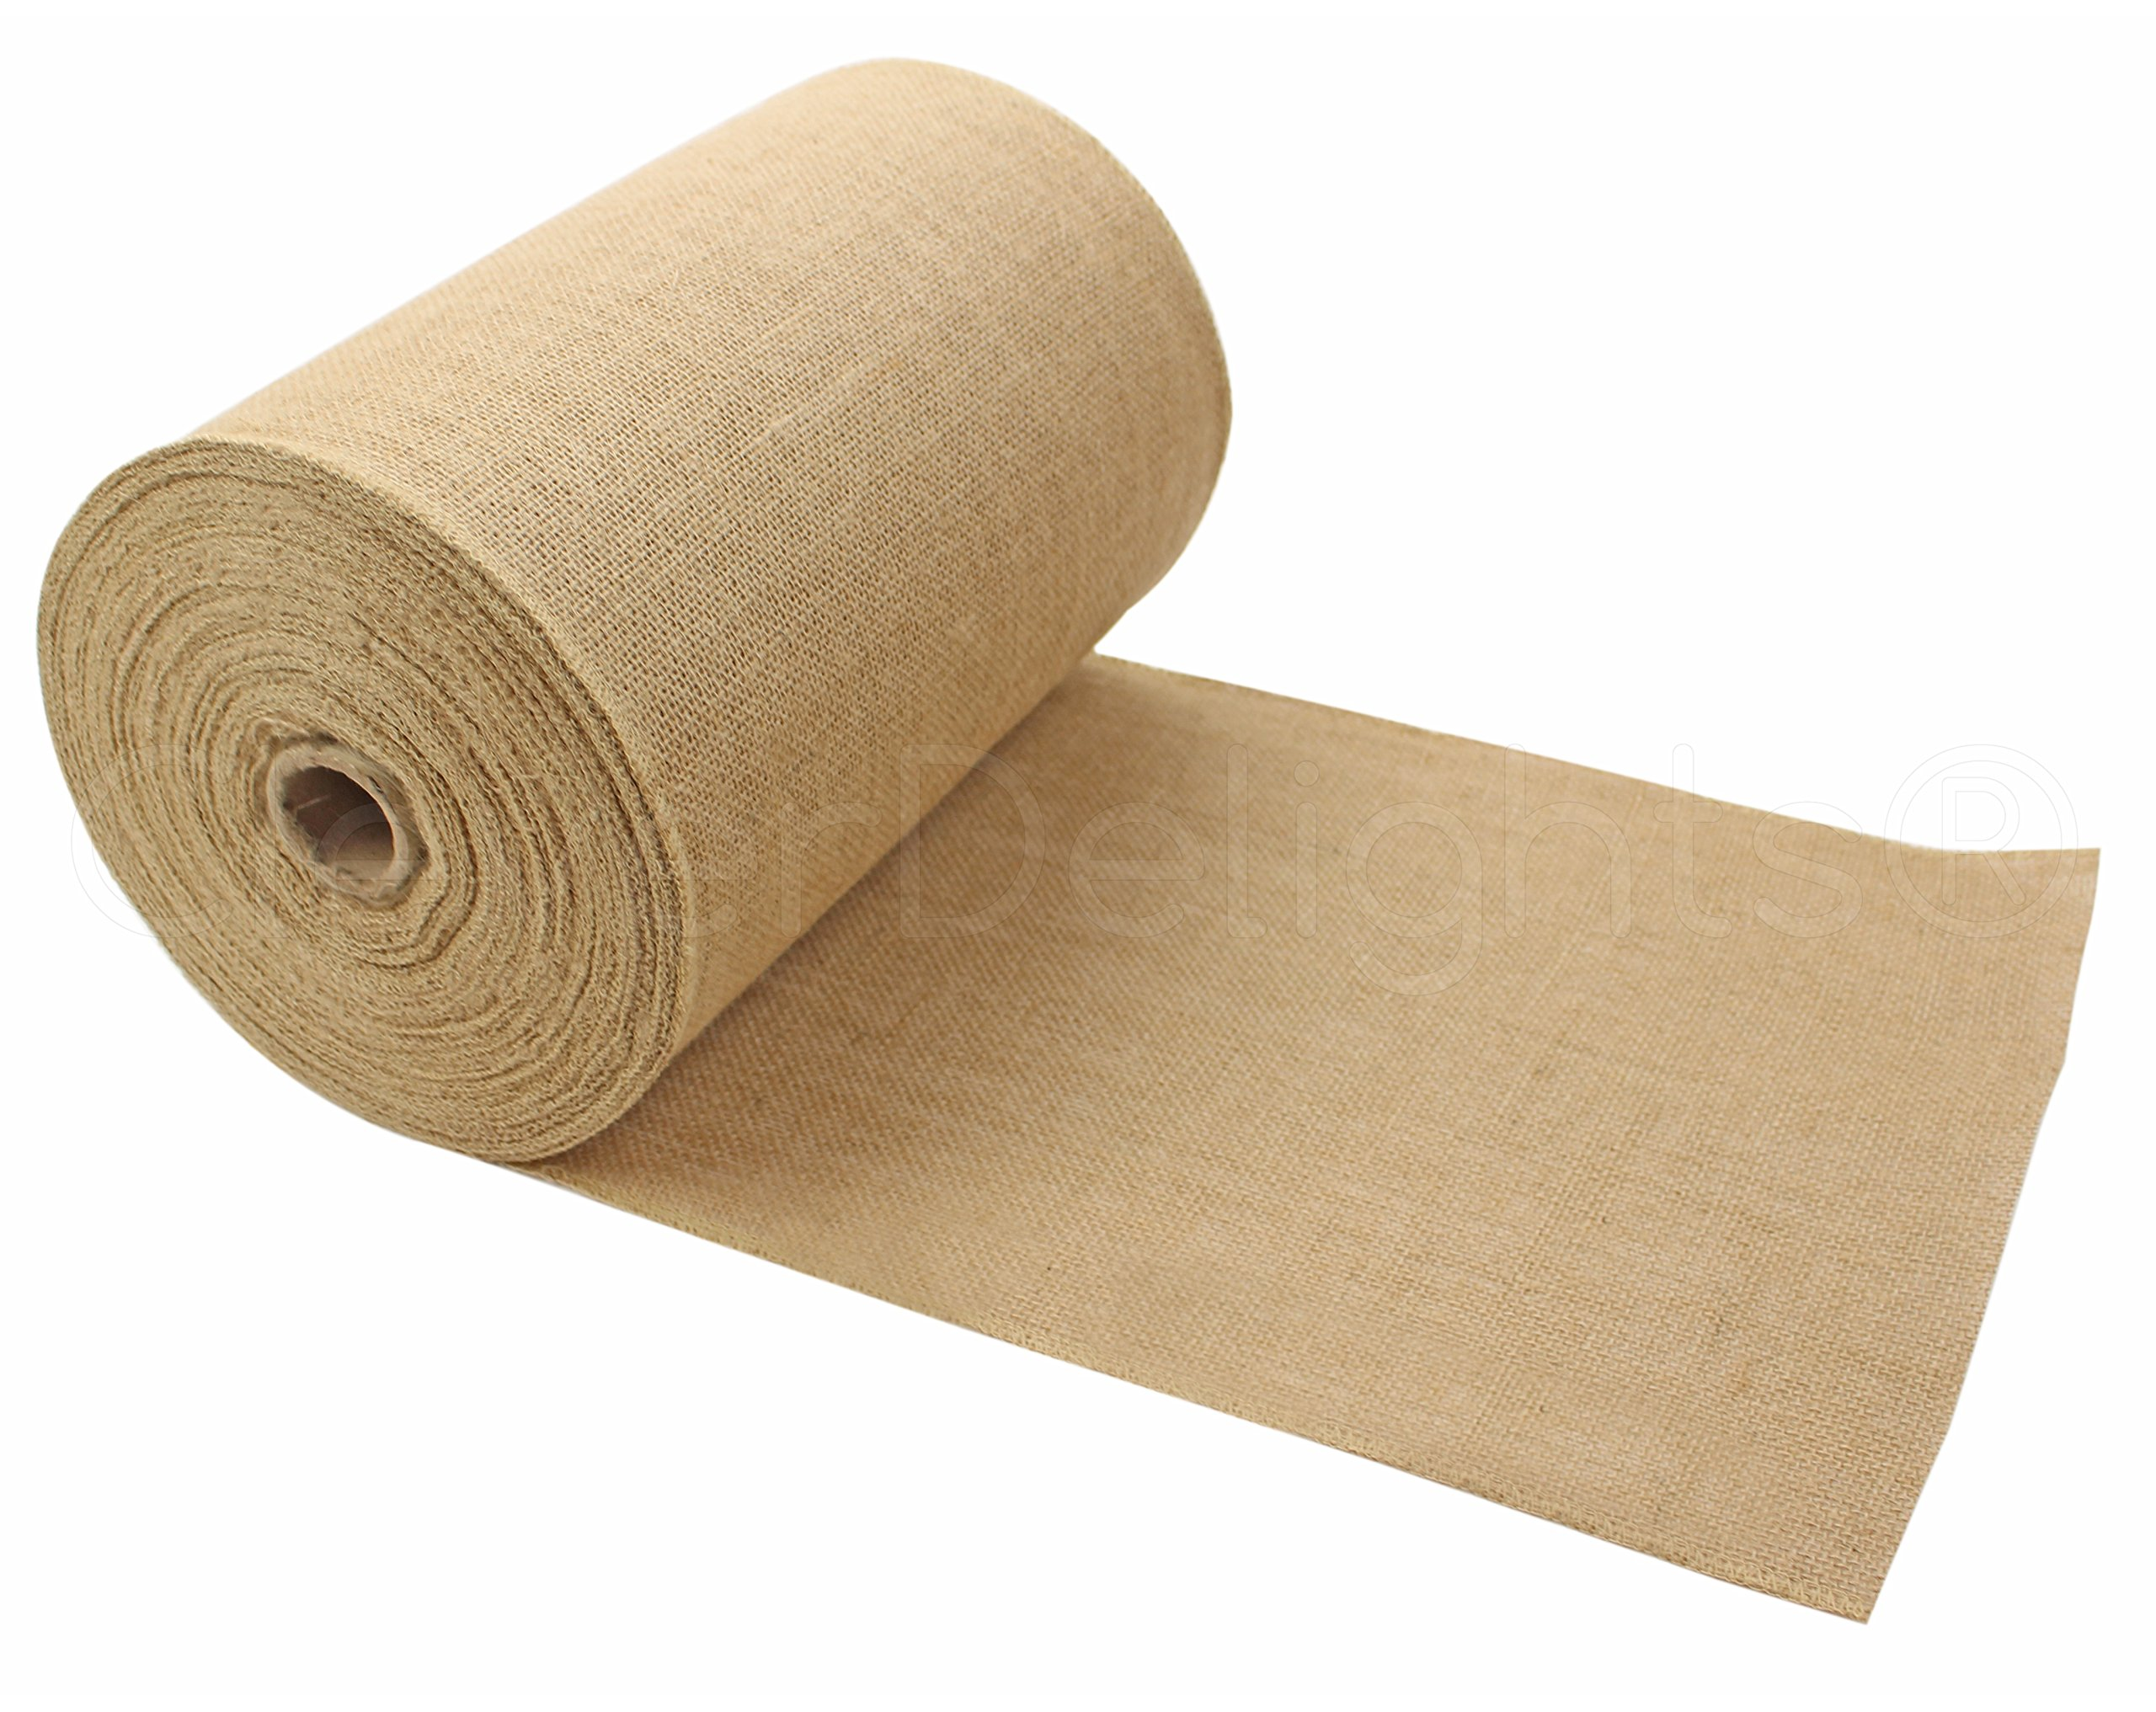 CleverDelights 12'' Premium Burlap Roll - 50 Yards - No-Fray Finished Edges - Natural Jute Burlap Fabric by CleverDelights (Image #1)